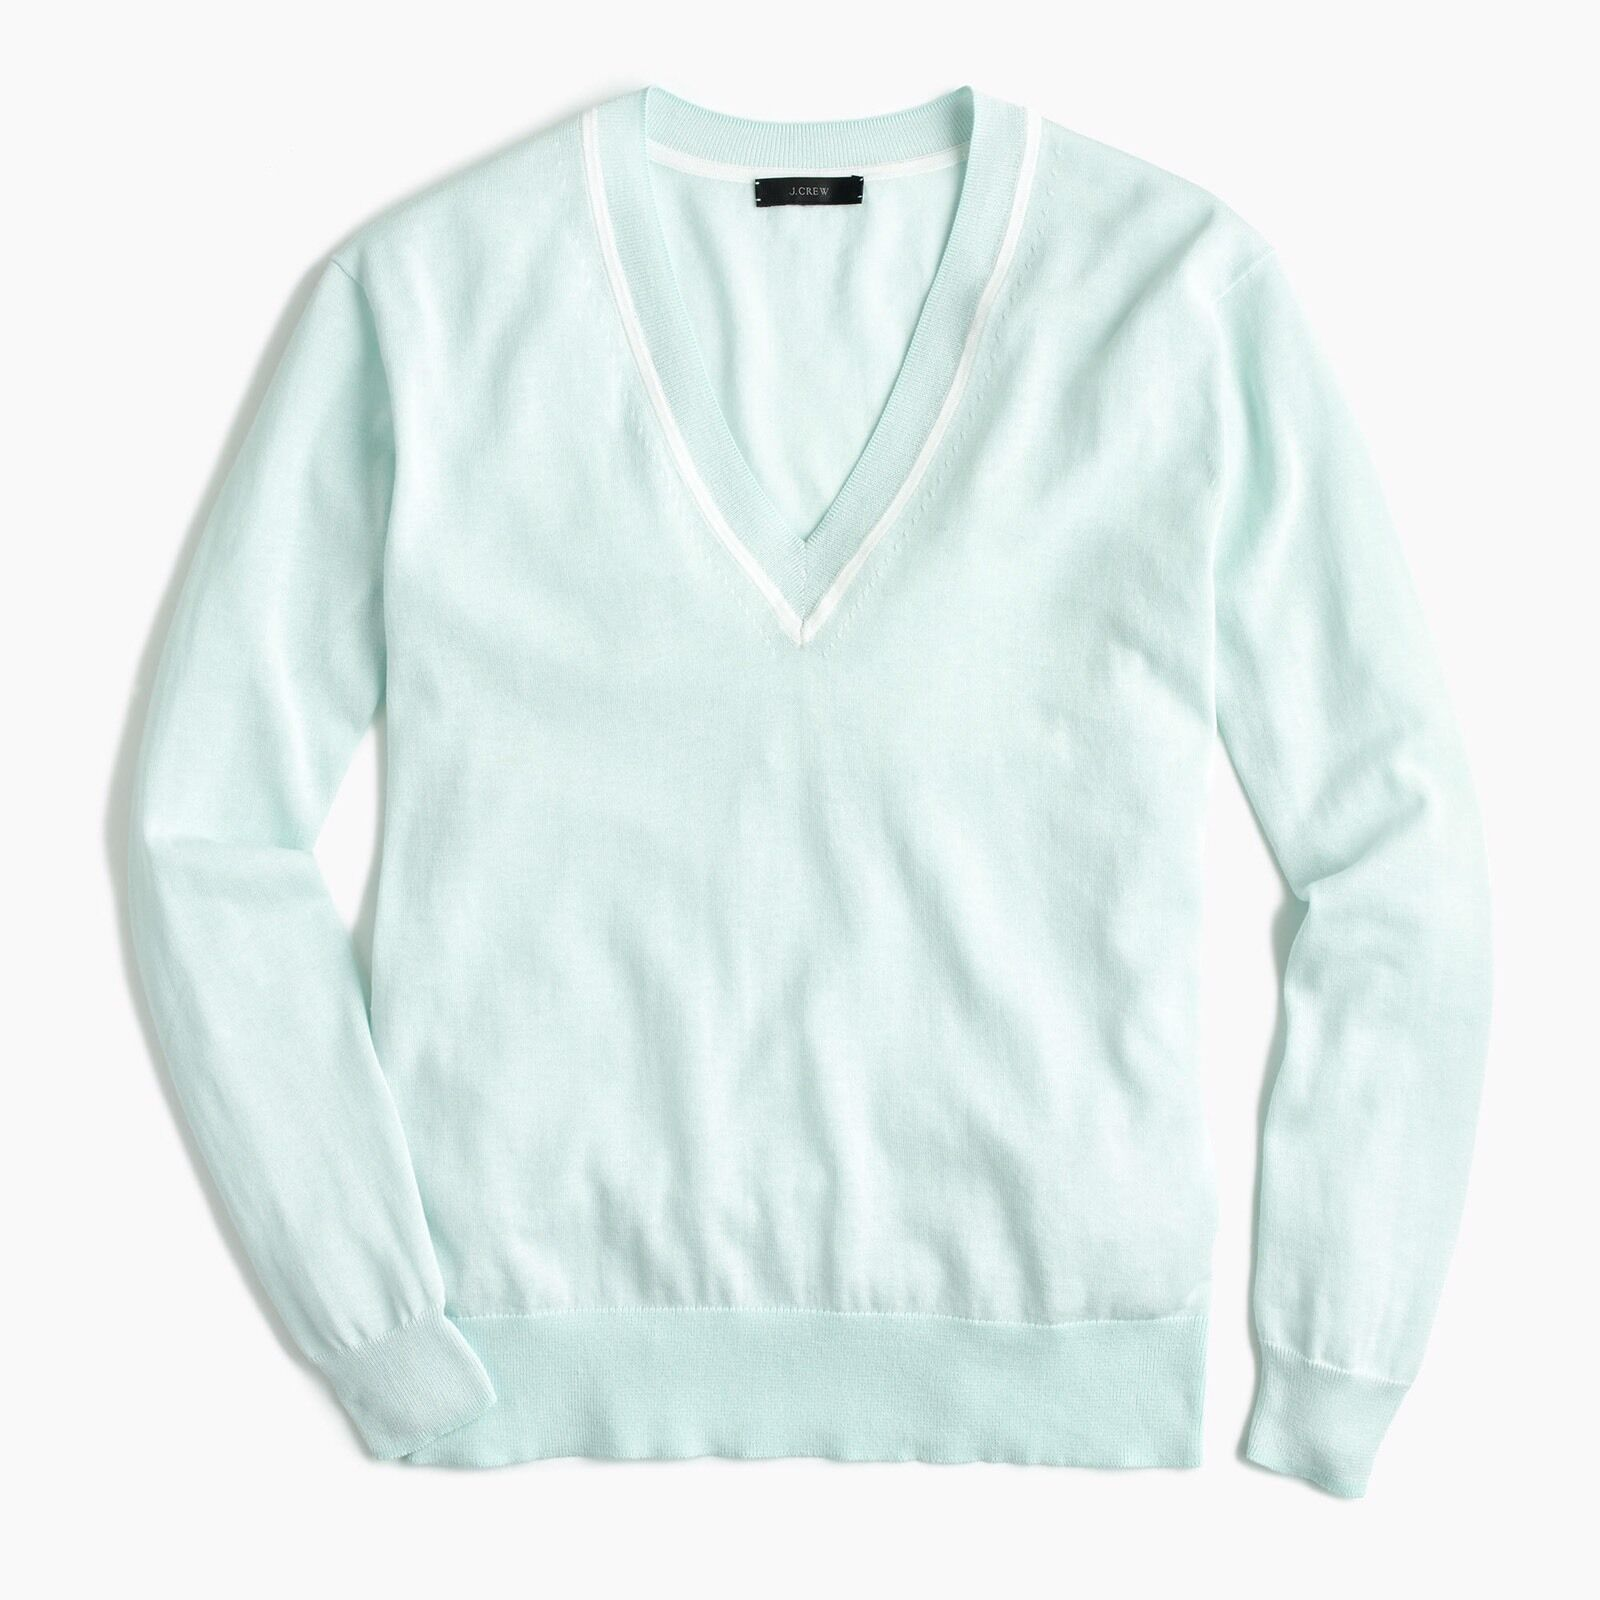 JCrew V-neck sweater in summerweight cotton G1293 Größe L  65